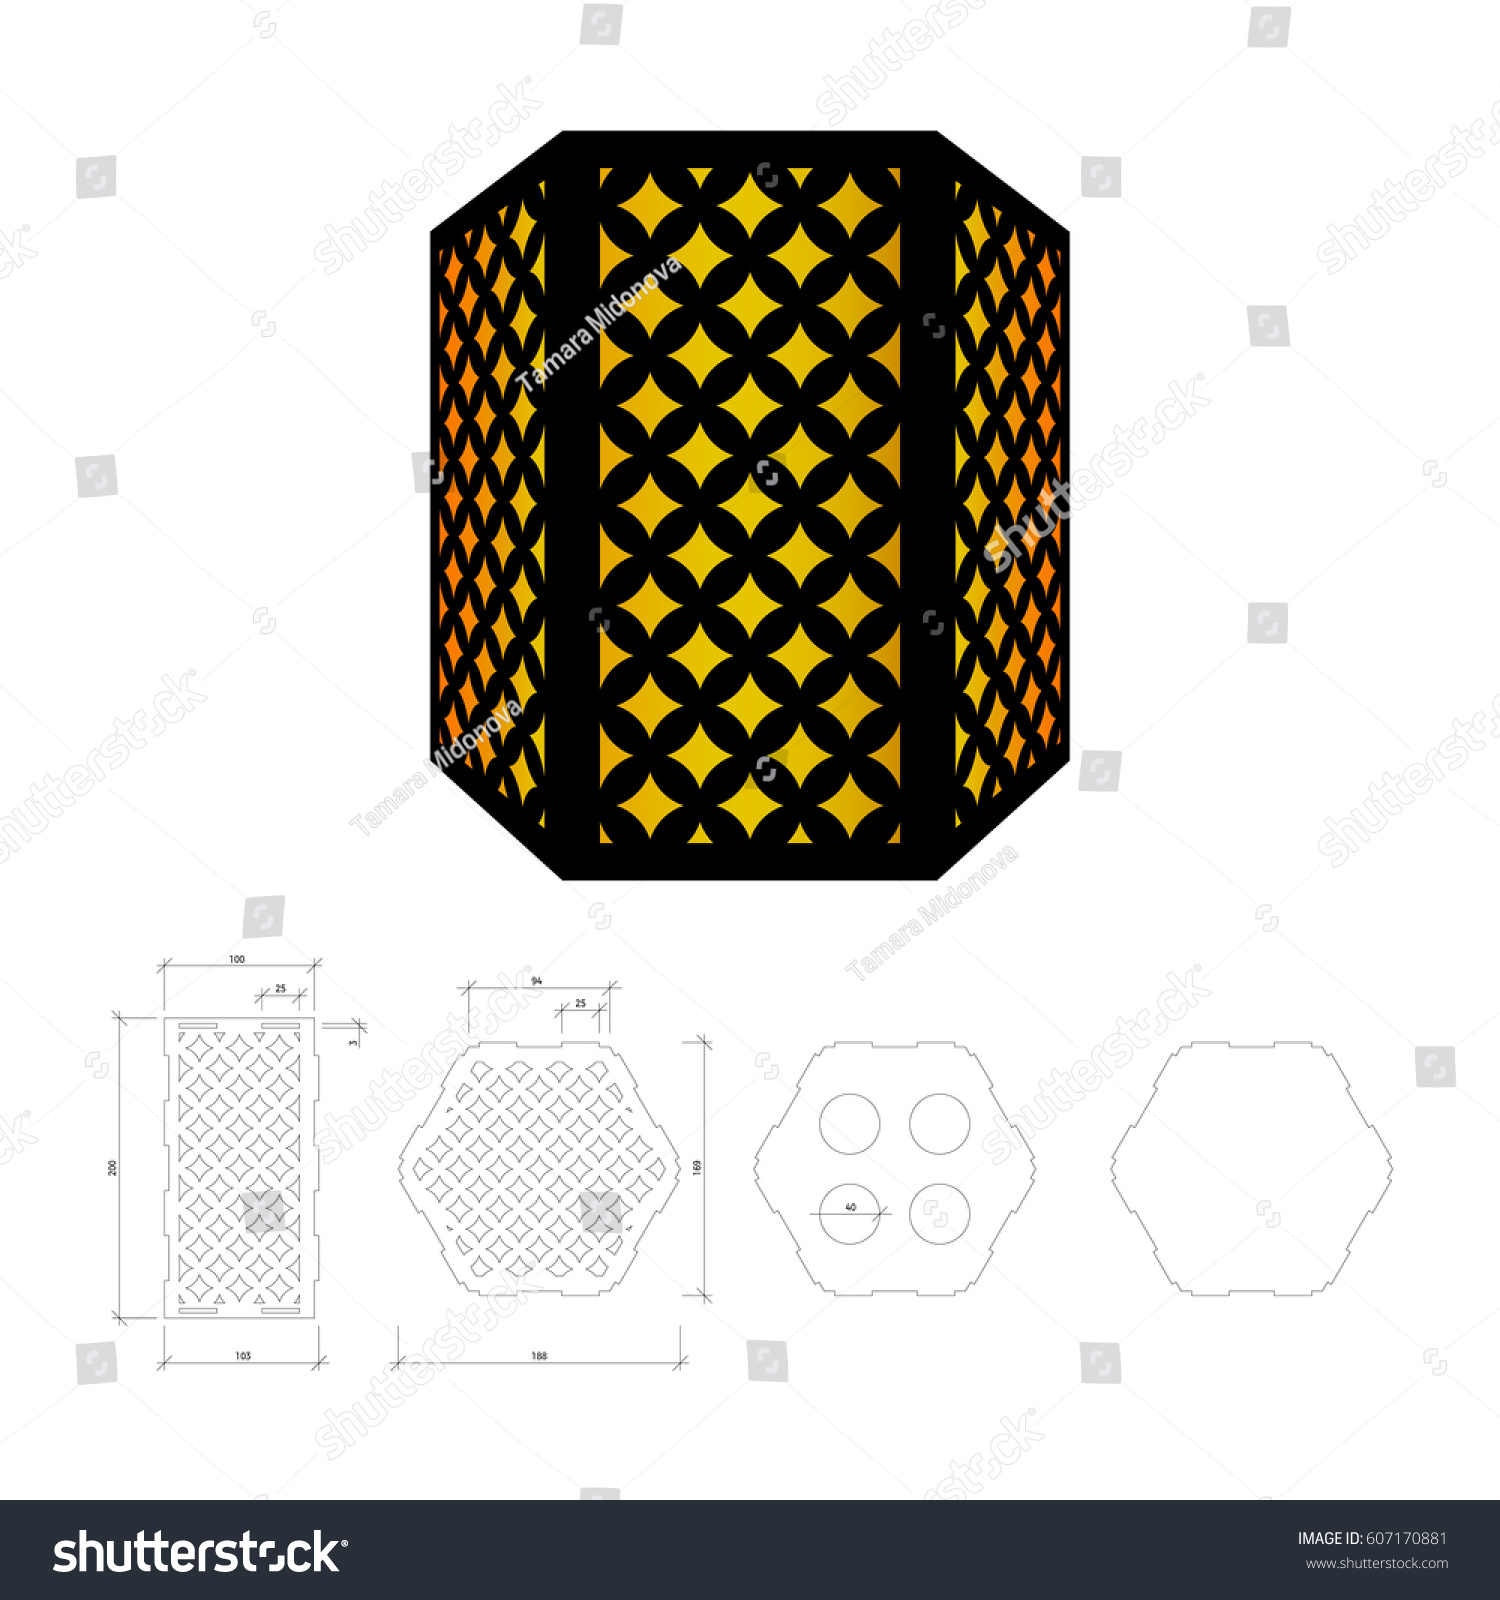 Cut out template lamp candle holder stock vector 607170881 cut out template lamp candle holder stock vector 607170881 shutterstock arubaitofo Image collections